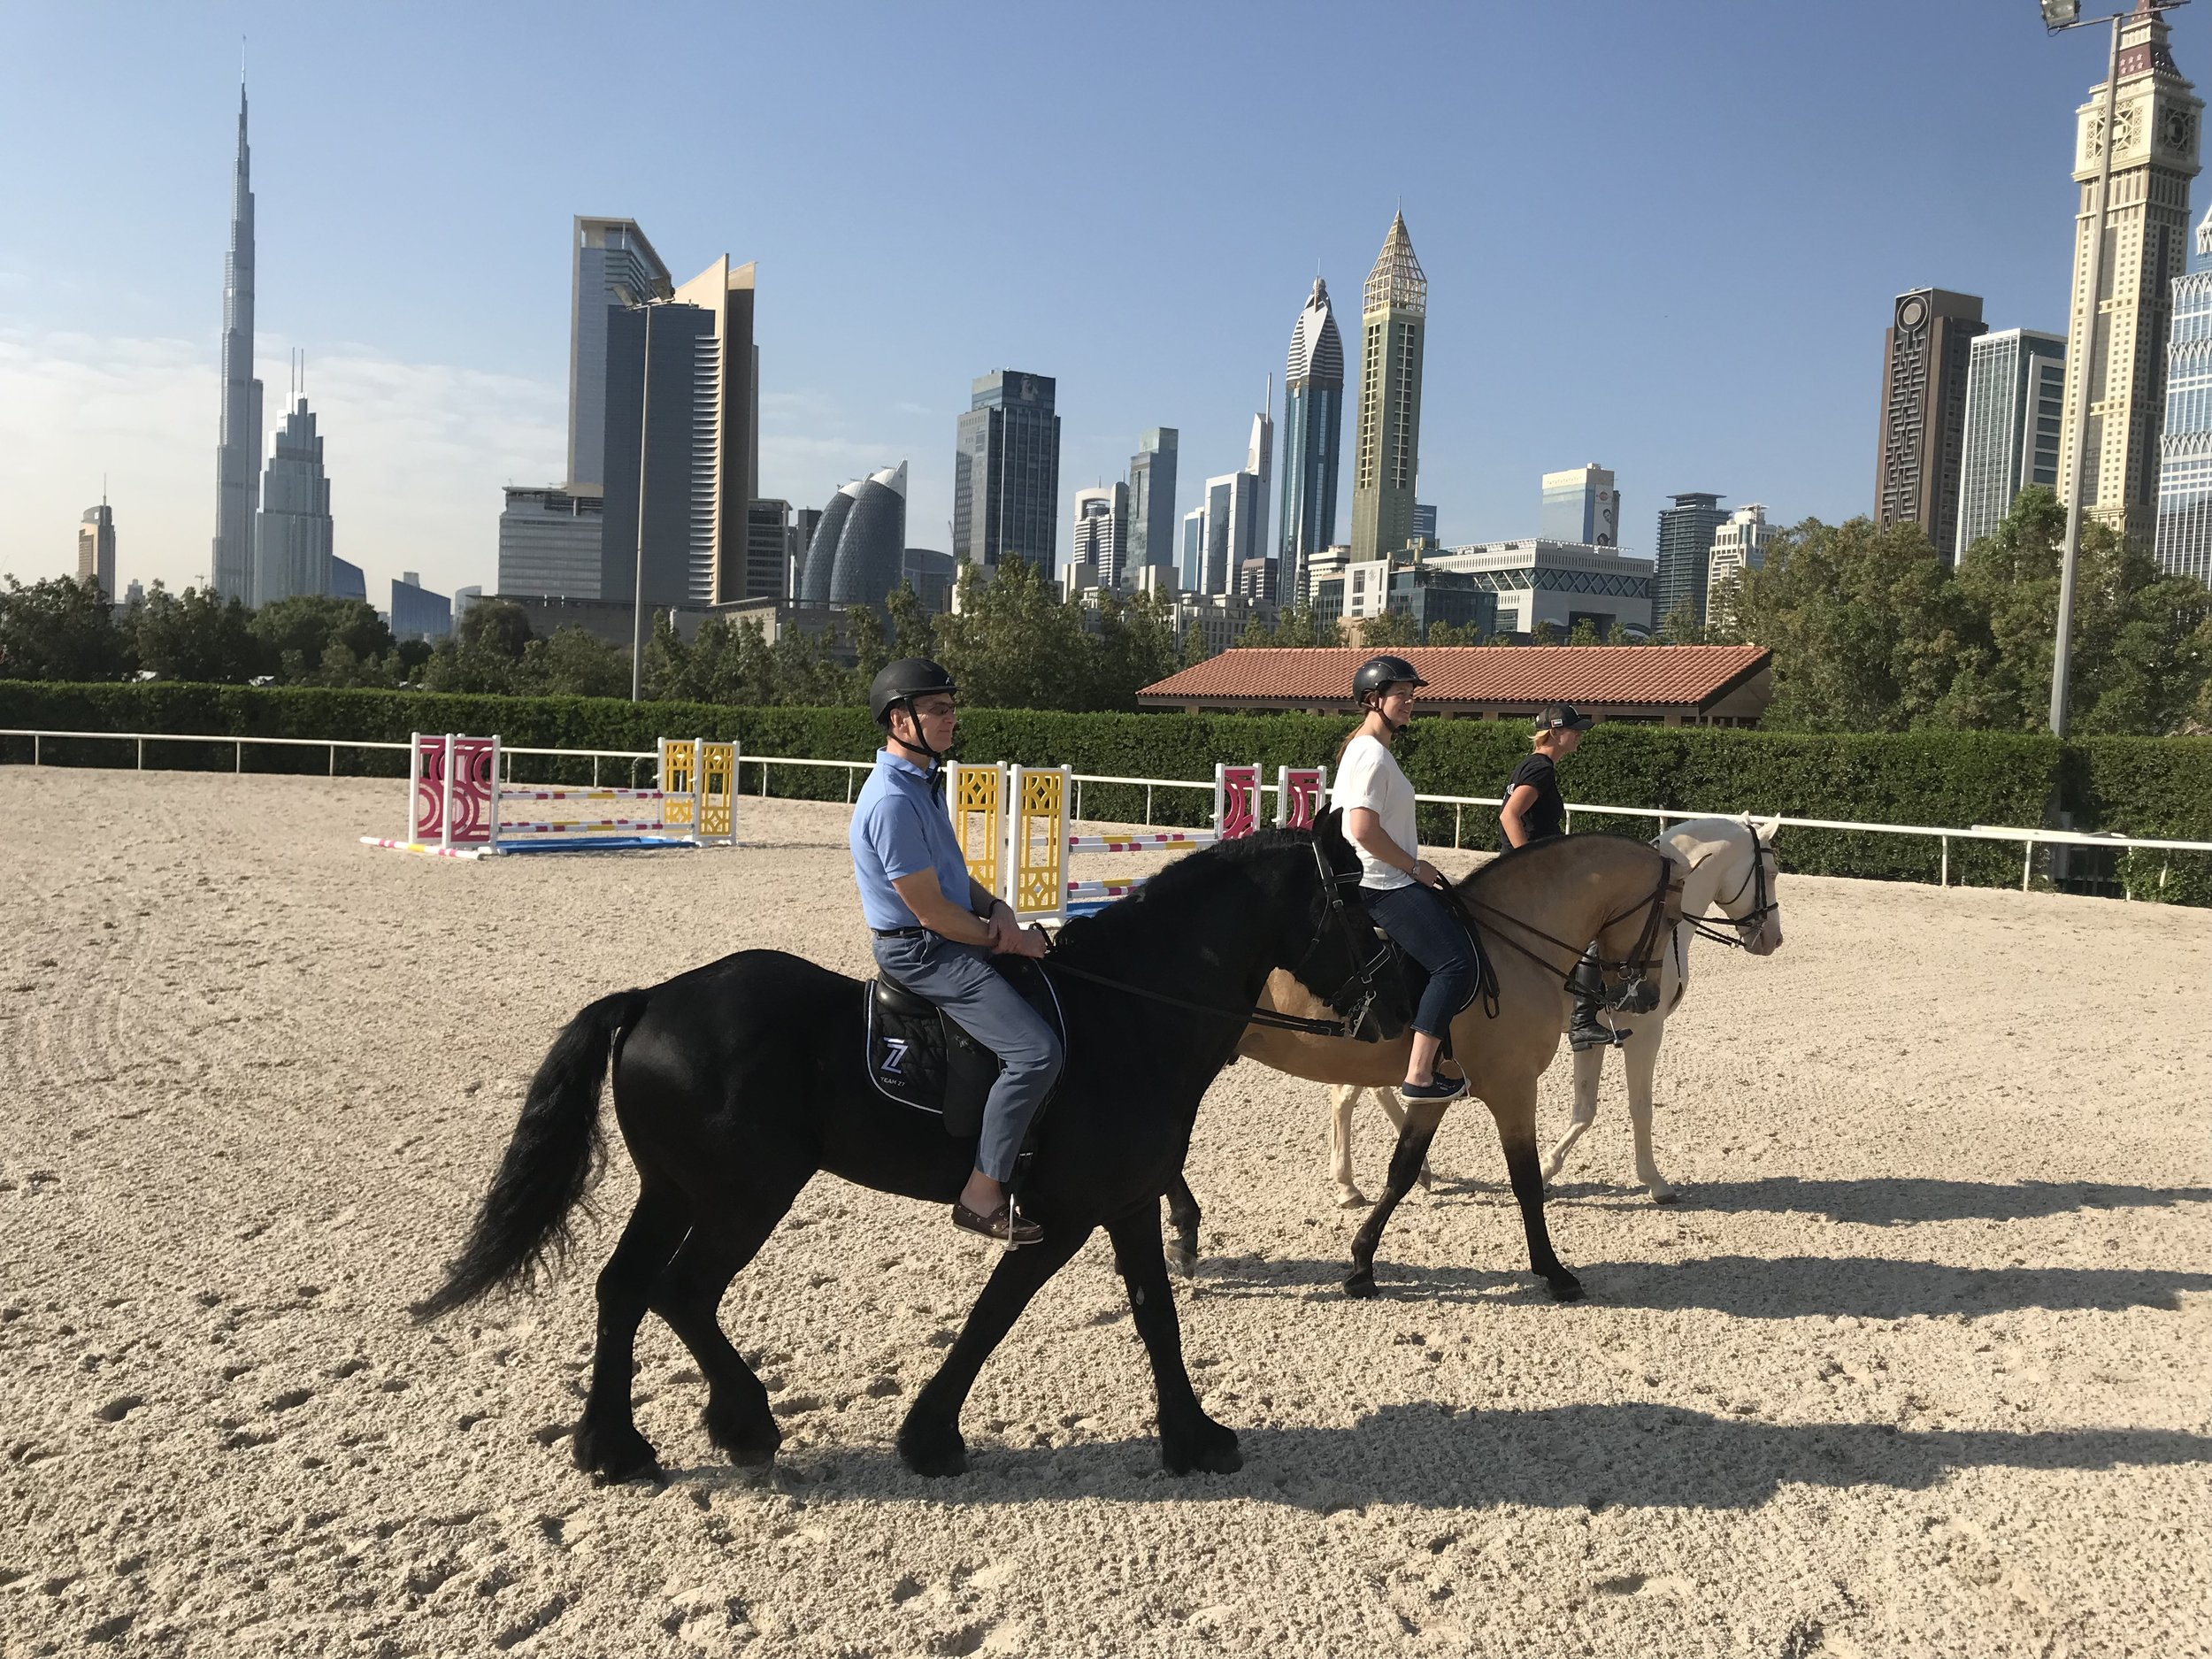 Mark, Chloe & Claire at Z7 Stables with the Skyscrapers of Downtown Dubai in the background